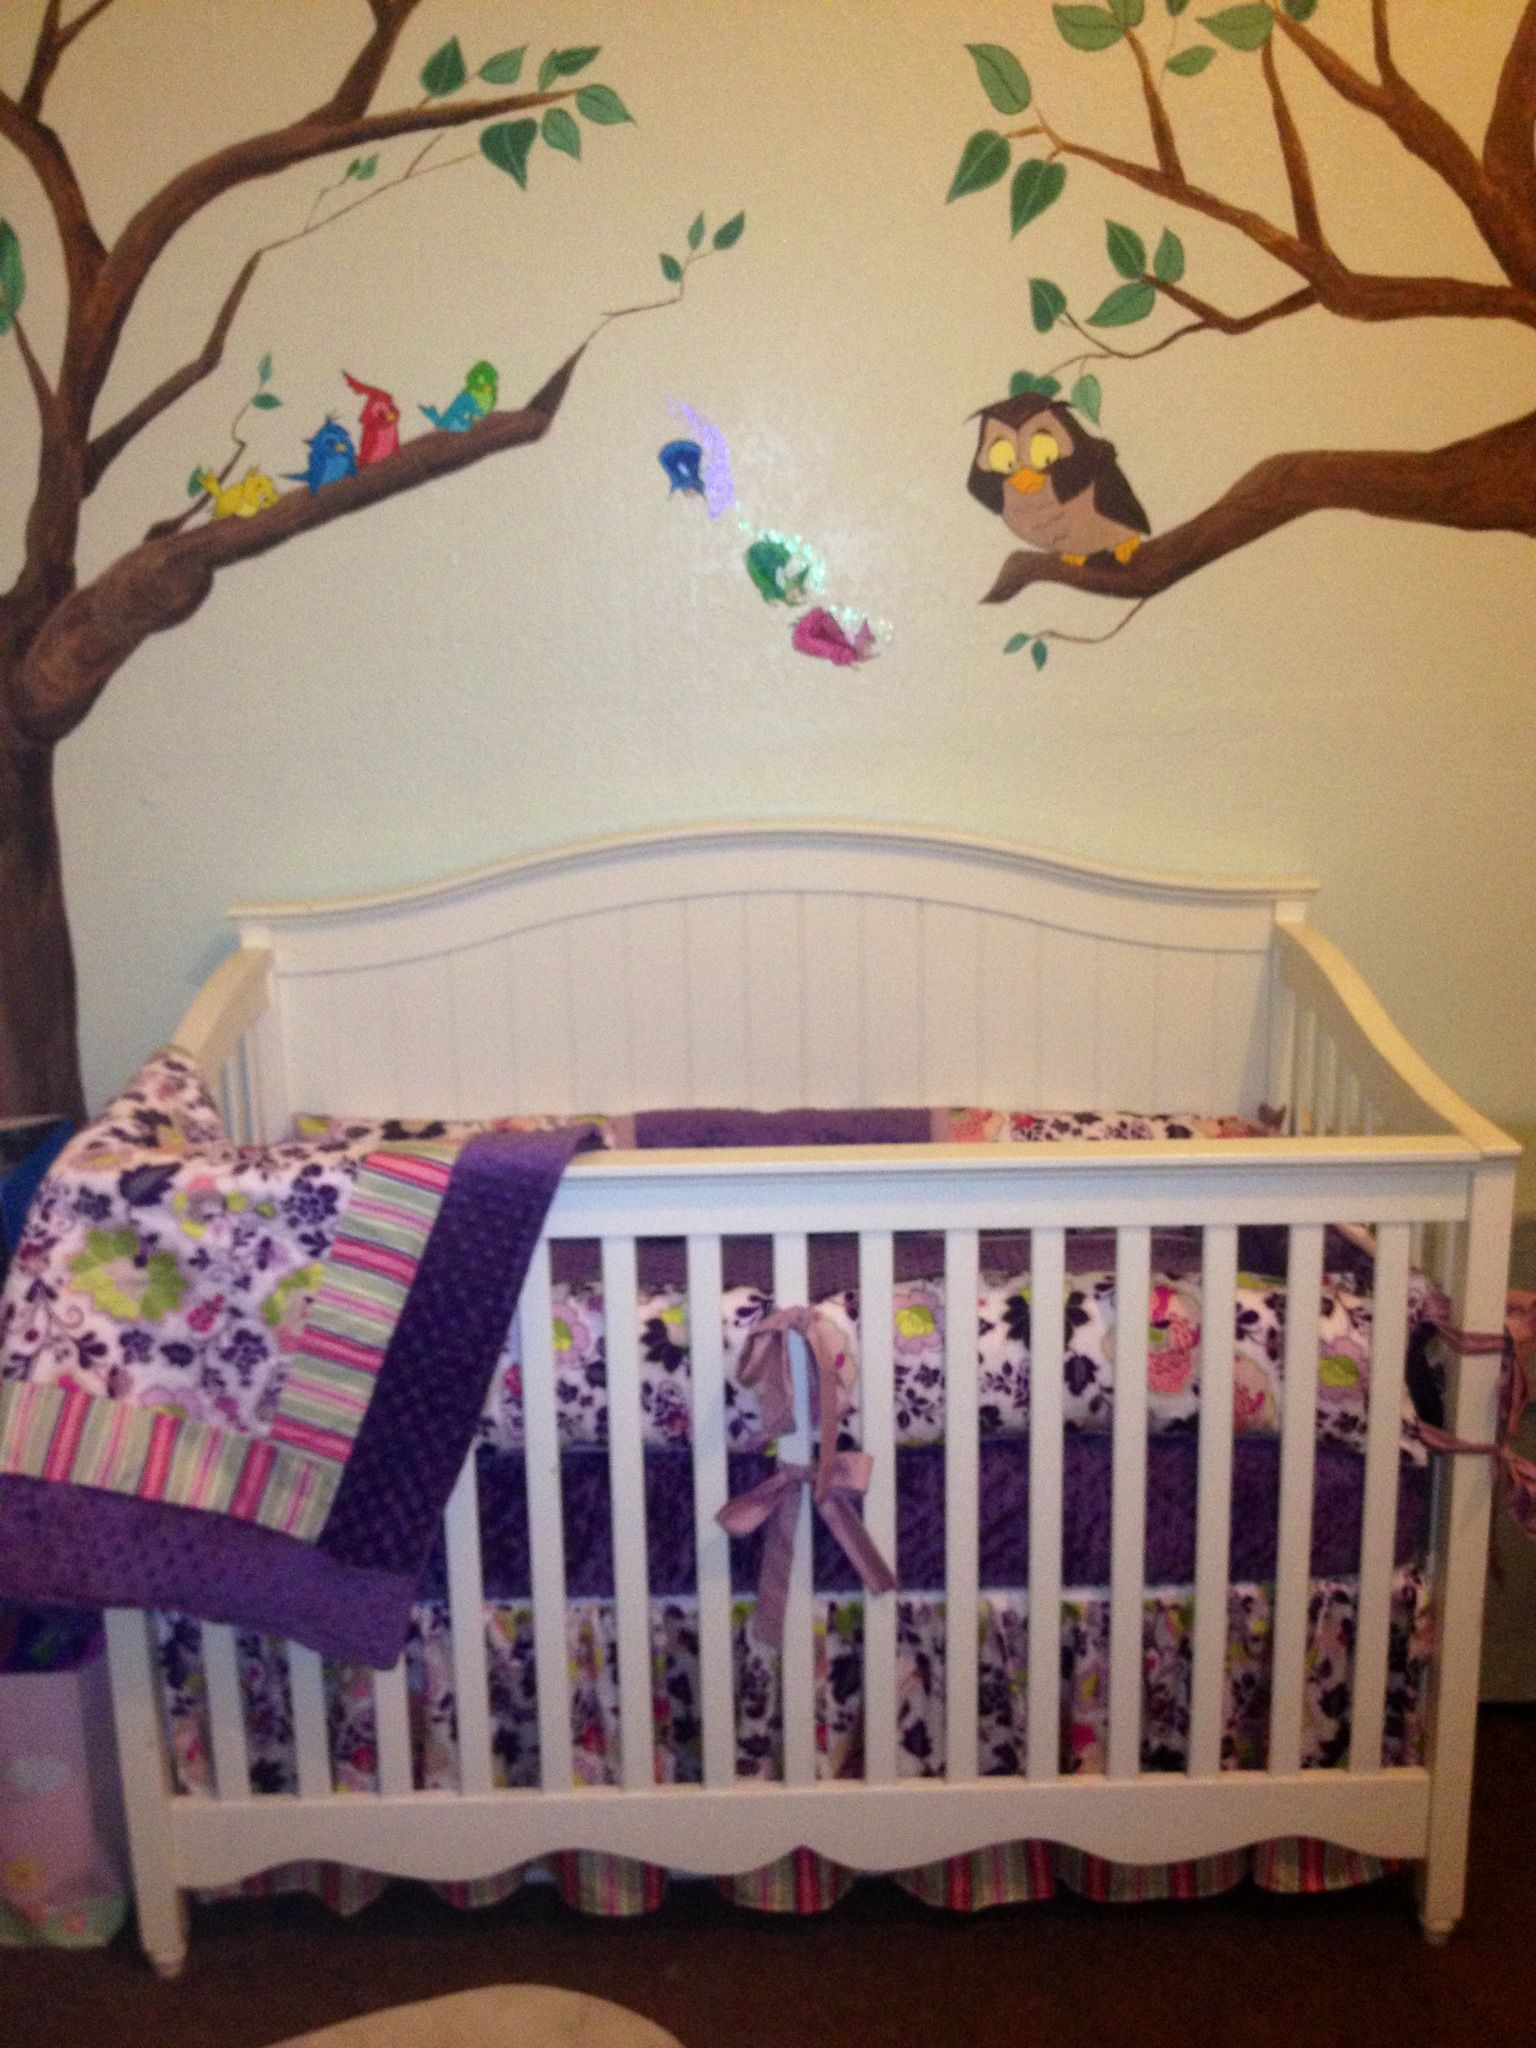 Sleeping beauty nursery mural by rachel osborn https for Sleeping room decoration